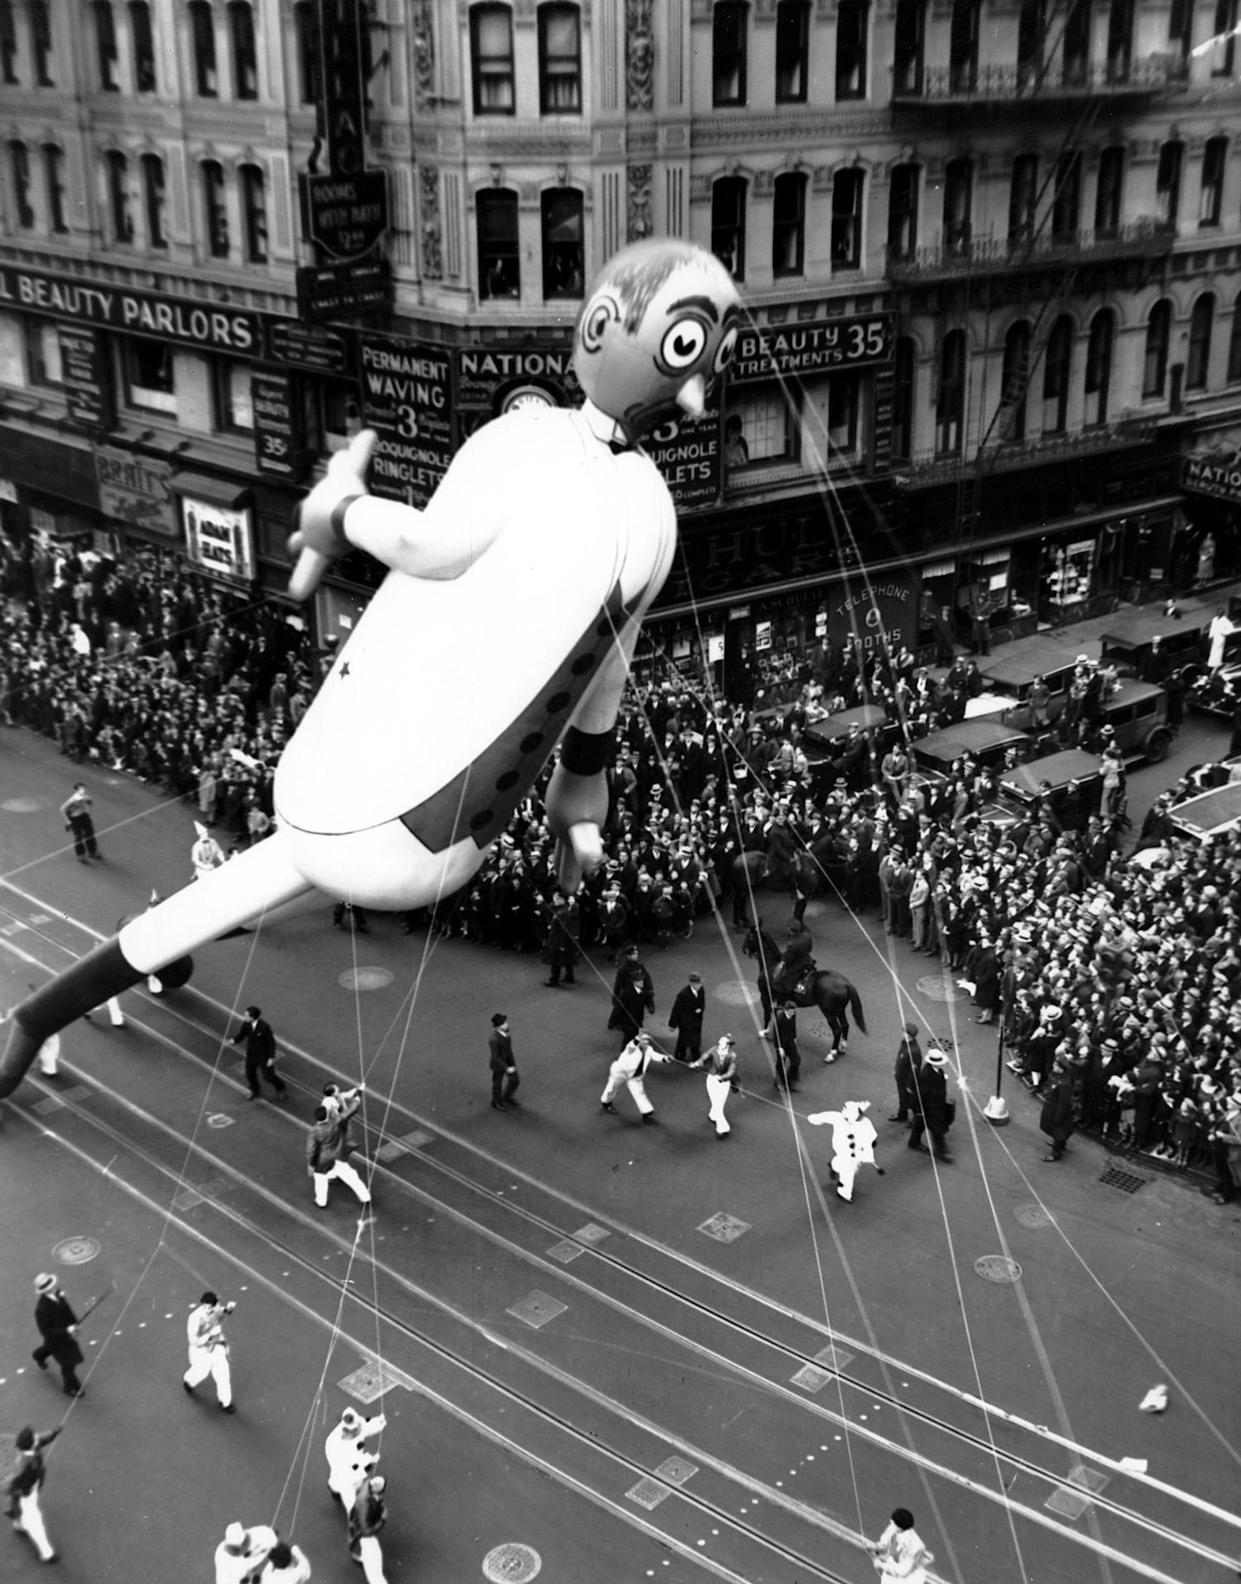 A scene from the Macy's Thanksgiving Day Parade along Broadway in New York City on Nov. 30, 1933. (Photo: AP)